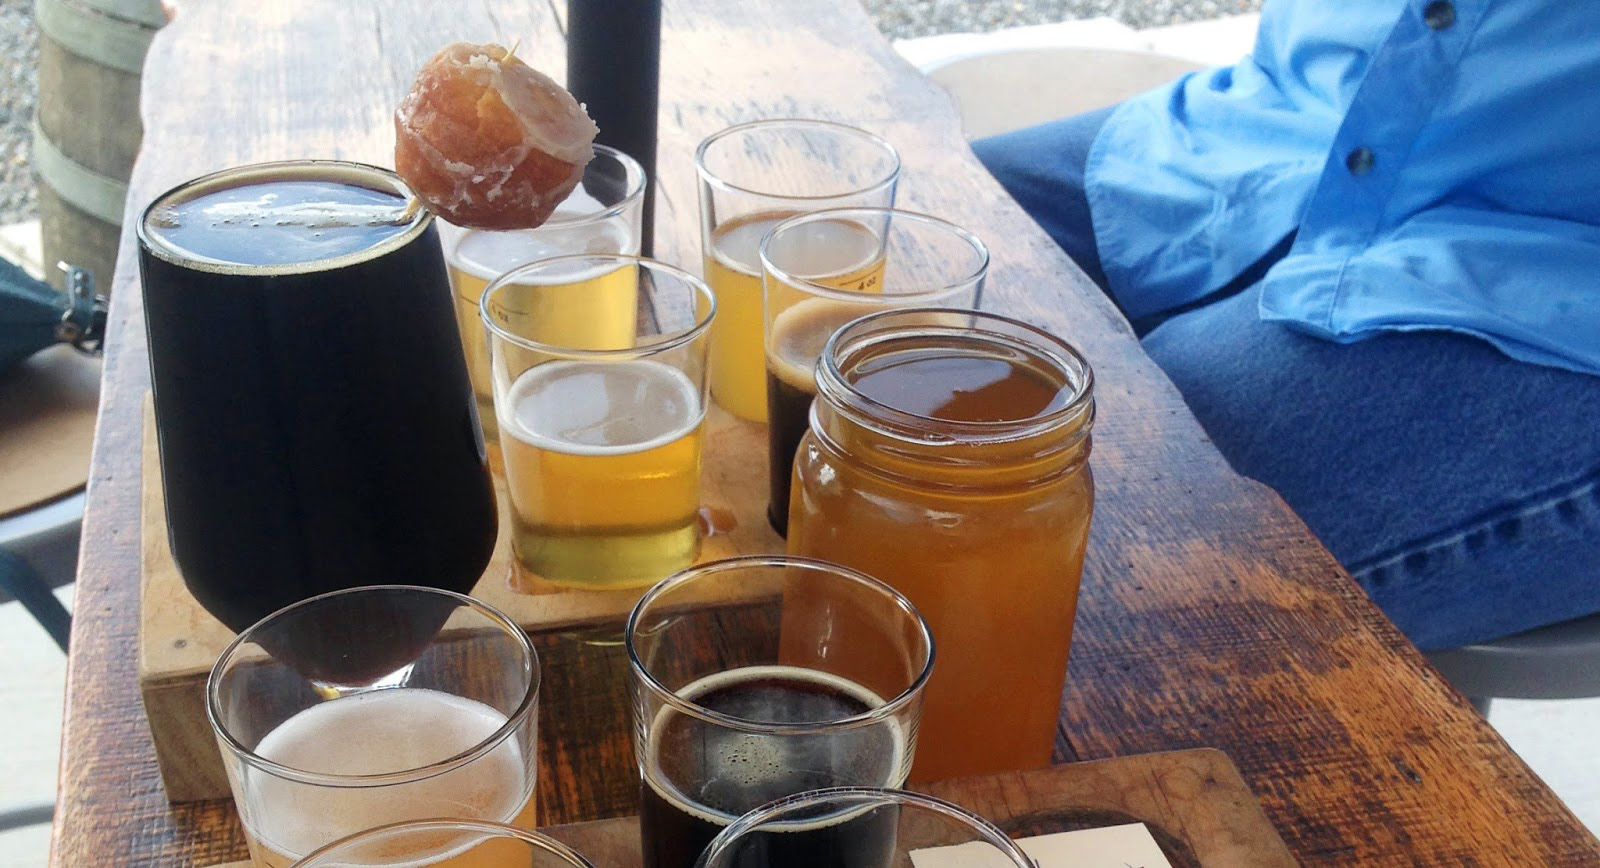 Burial Beer Company of Asheville made the list with its Skillet Donut Stout.